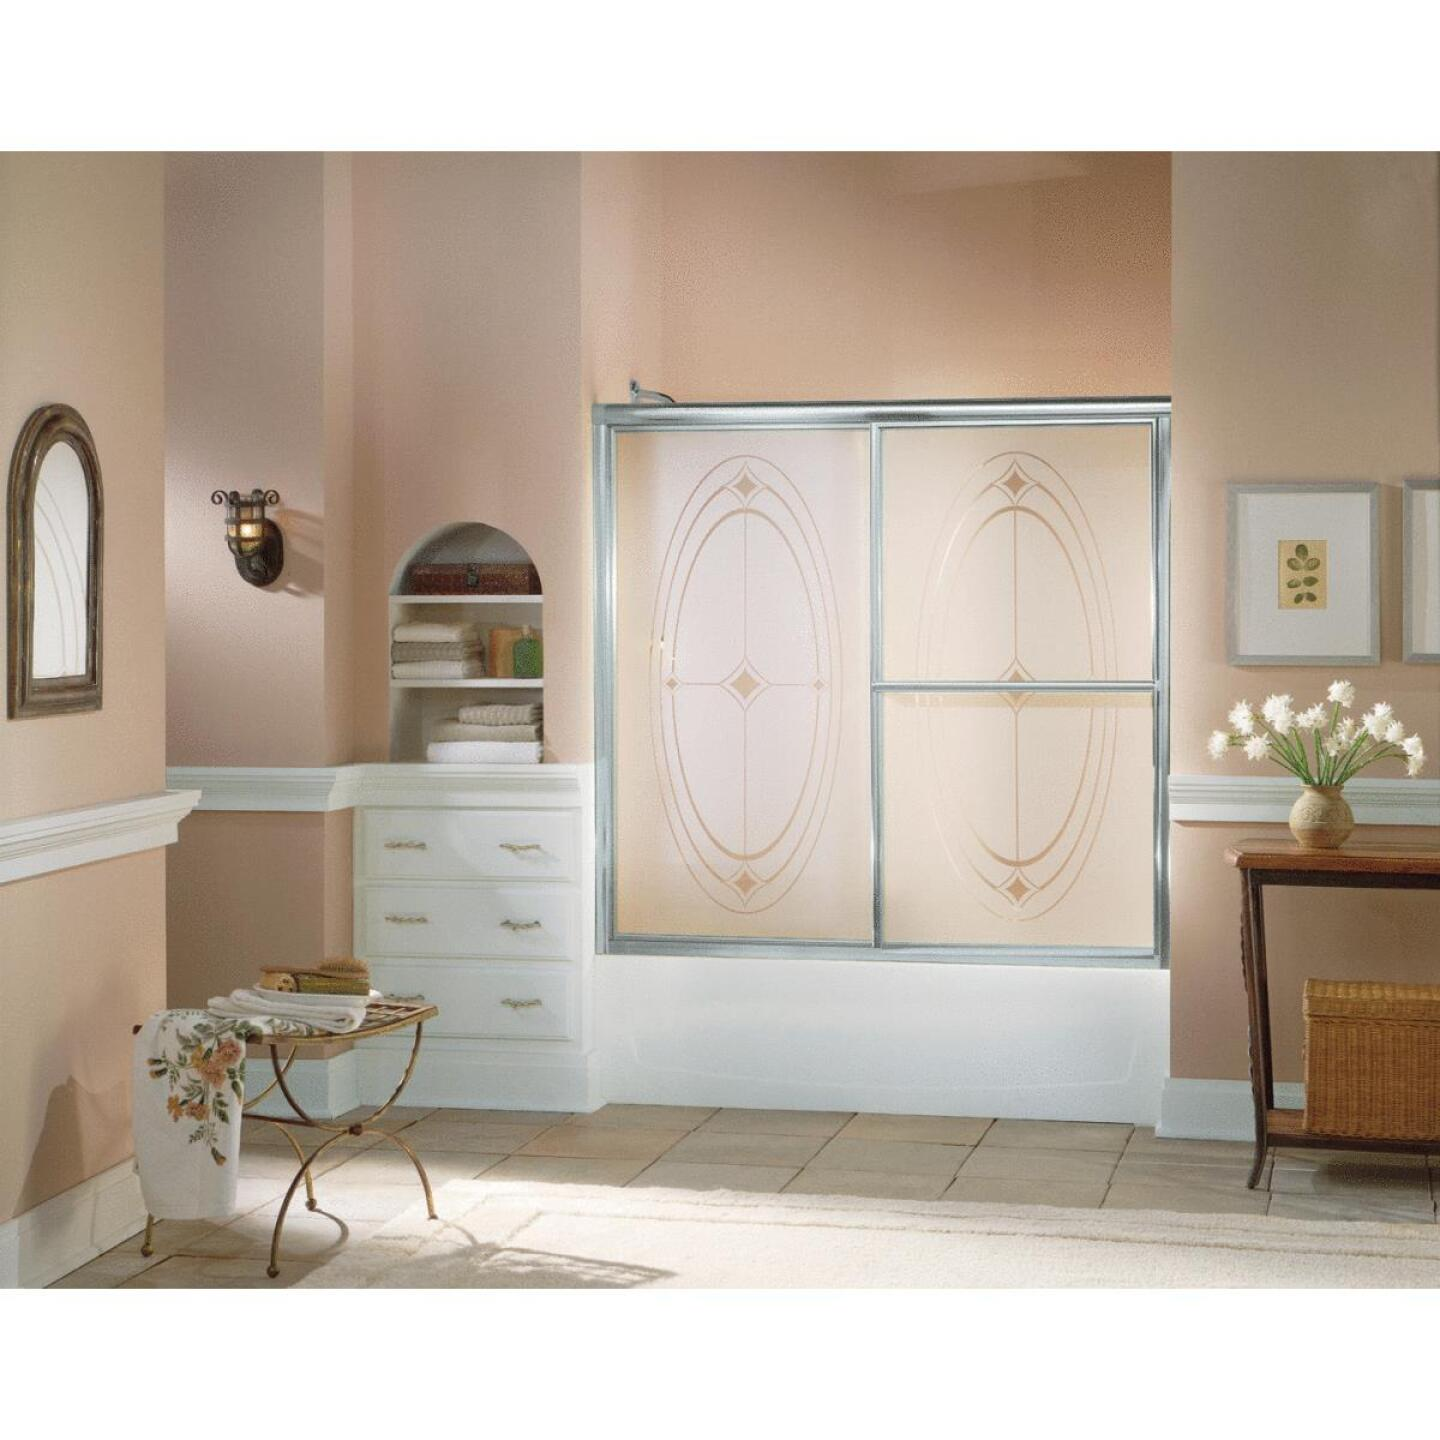 Sterling Deluxe Framed 59-3/8 In. W. X 56-1/4 In. H. Chrome Smooth with Elipse Pattern Sliding Tub Door Image 2